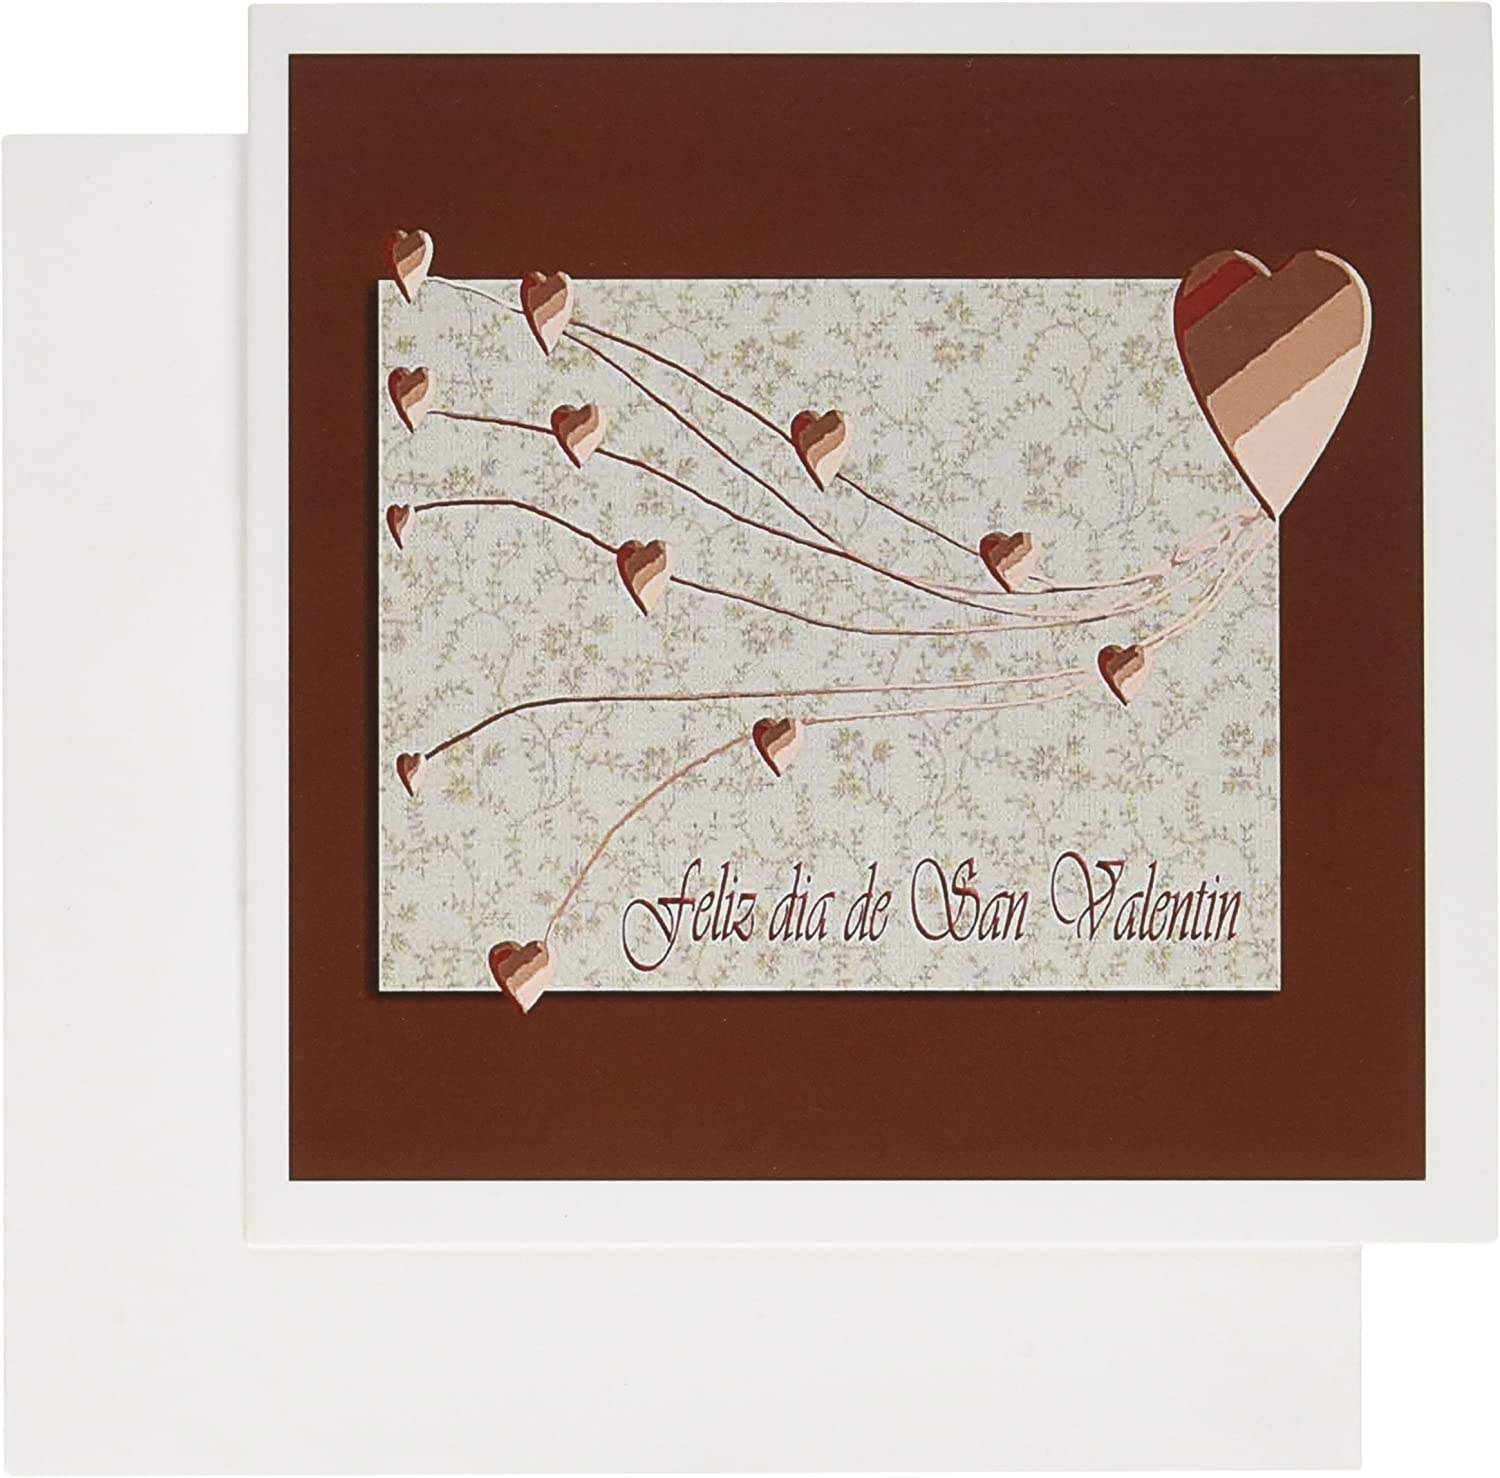 3dRose Feliz Dia de San Valentin, Happy Valintines Day in Spanish, Copper  Hearts - Greeting Cards, 6 x 6 inches, Set of 12 (gc_37053_2):  Amazon.co.uk: Office Products